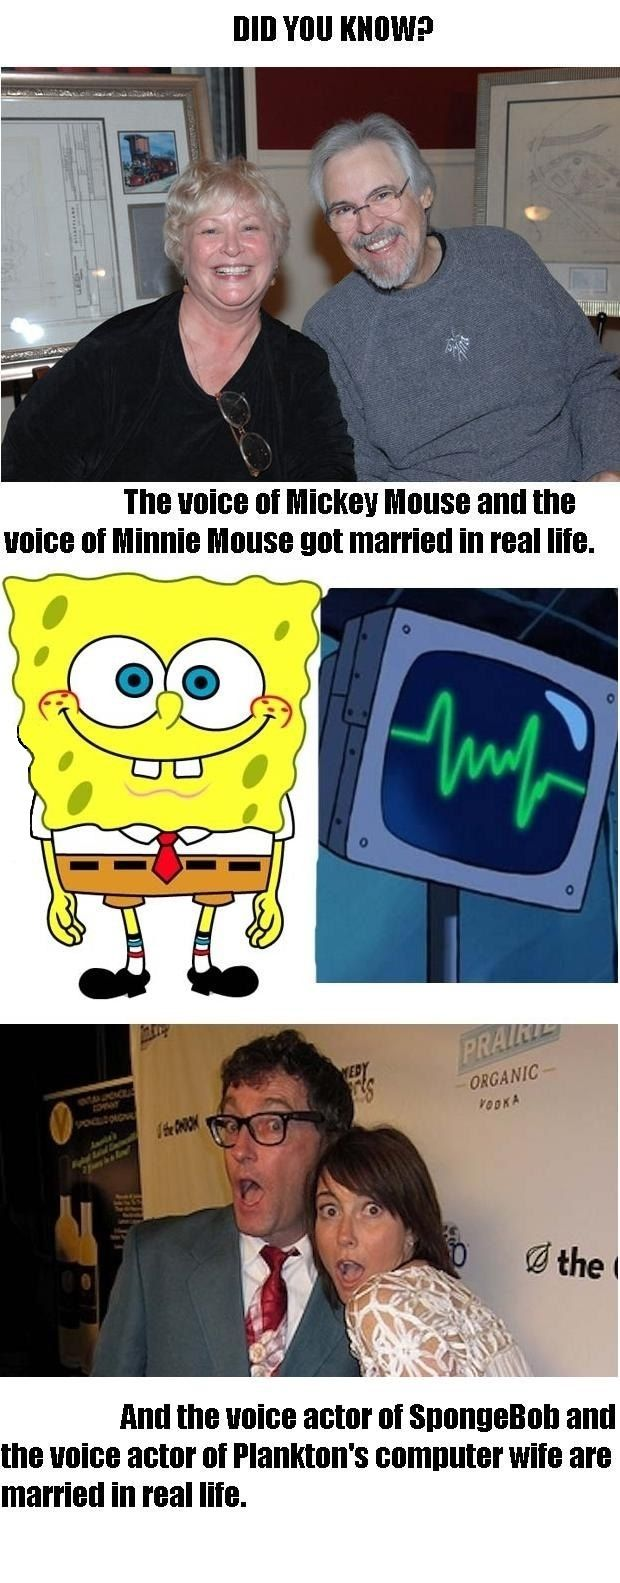 Did you know? // funny pictures - funny photos - funny images - funny pics - funny quotes - #lol #humor #funnypictures